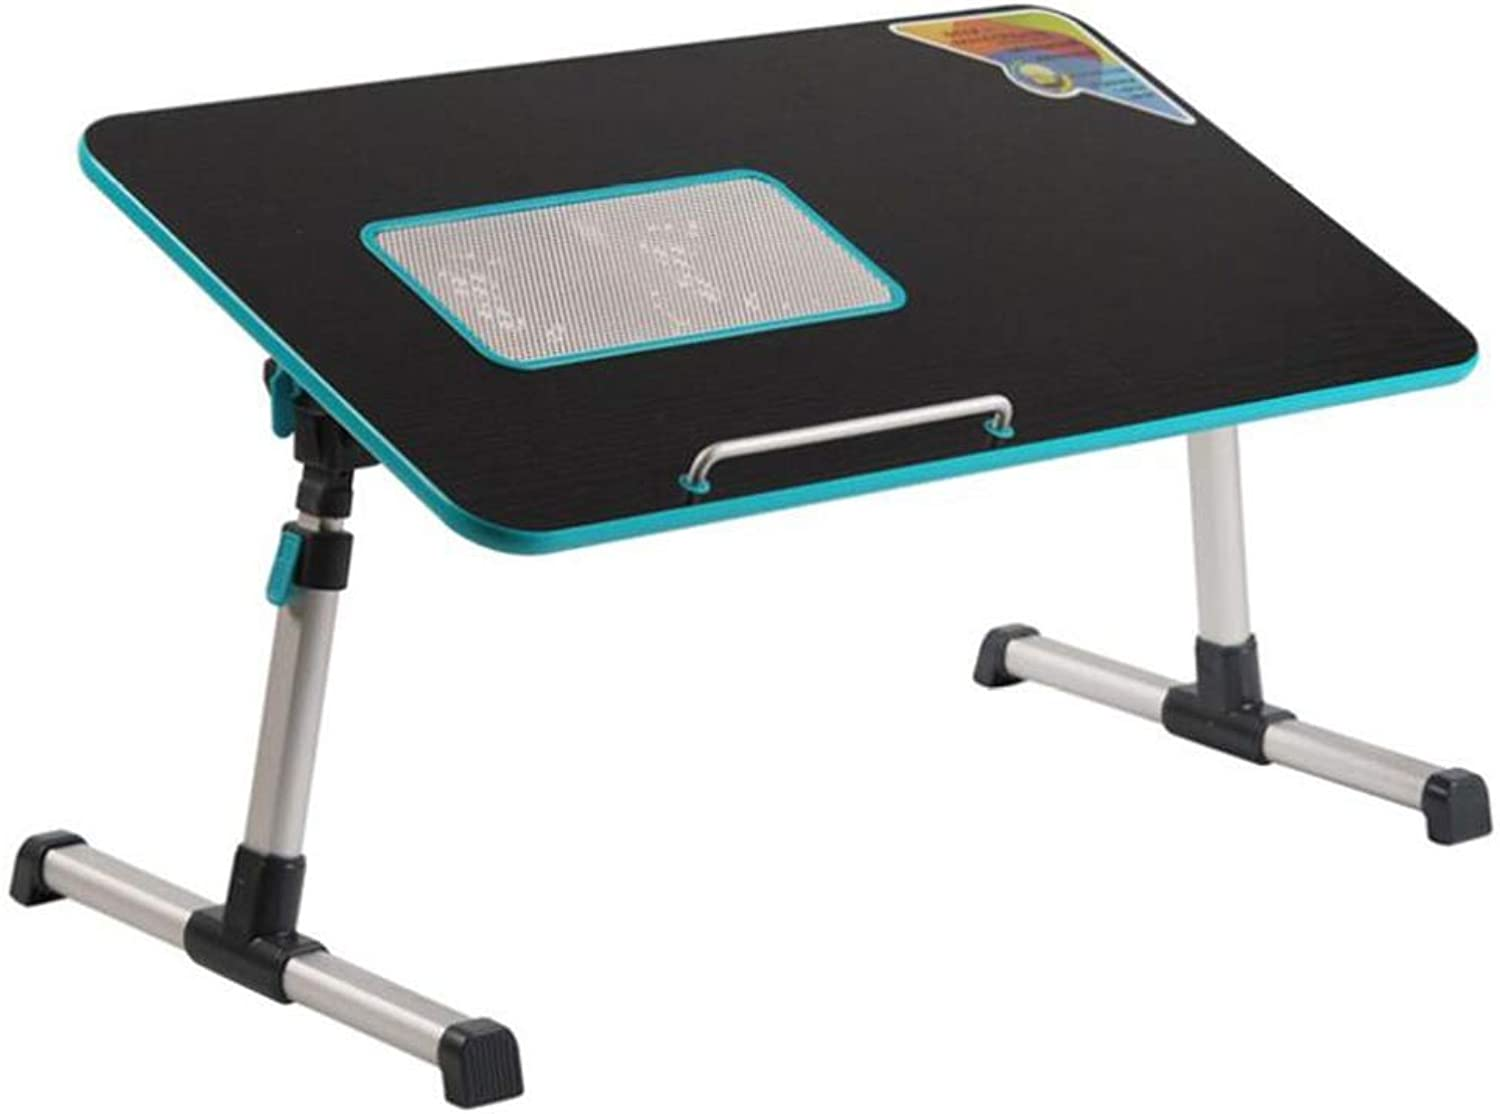 Laptop Bed Table Desk with Cooling Fan, Portable Lazy Table, Book Reading Holder (color   Black)